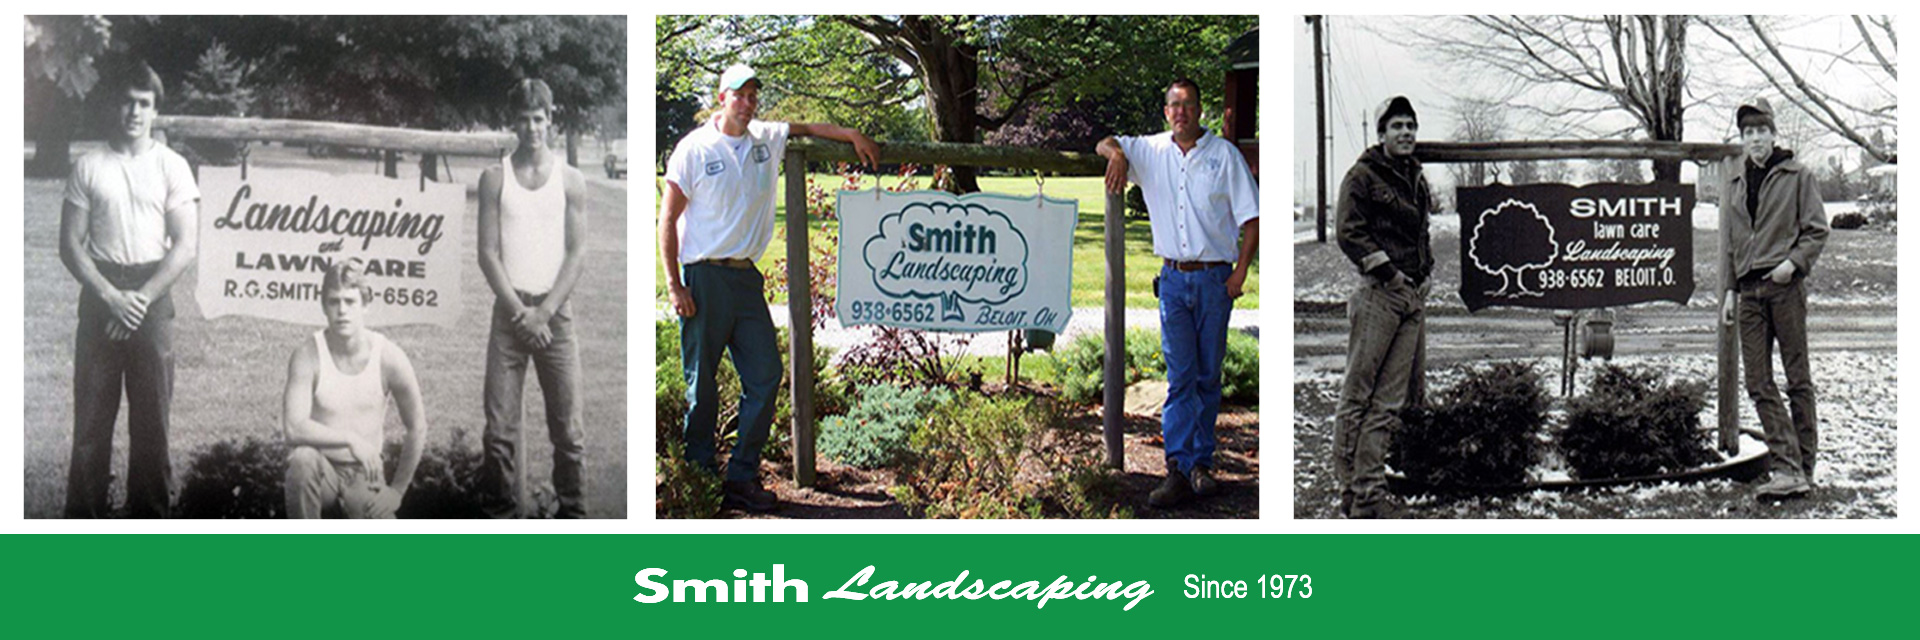 Smith Landscaping Jobs in Mahoning County